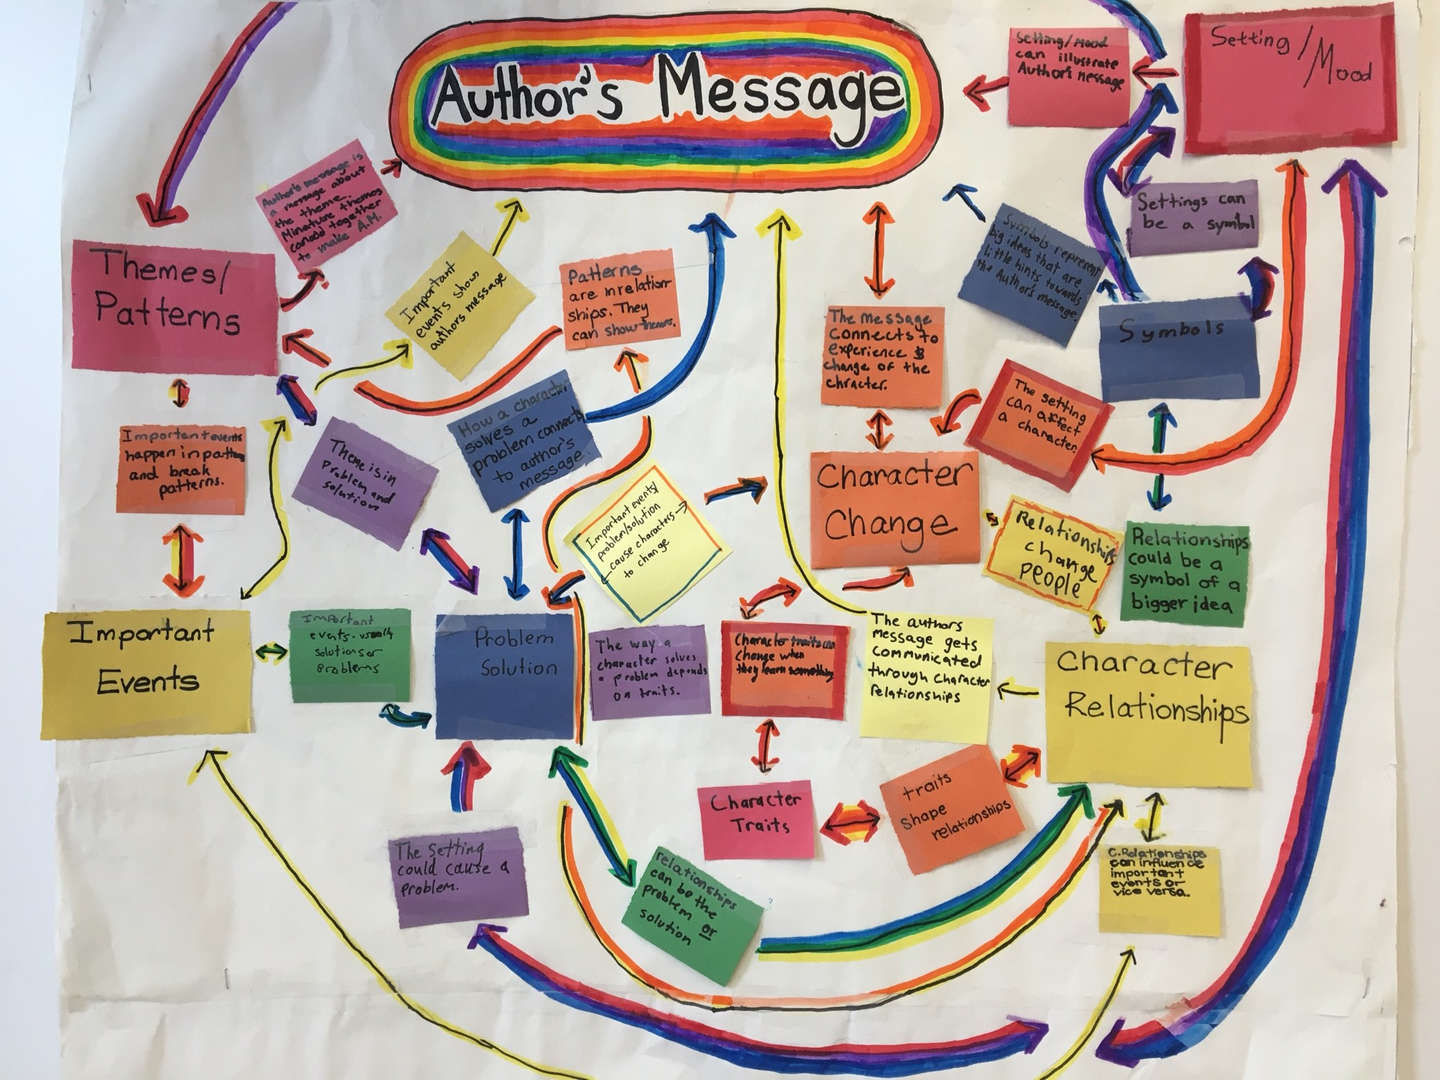 Graphic Analysis of Author's Message by 5th grade students